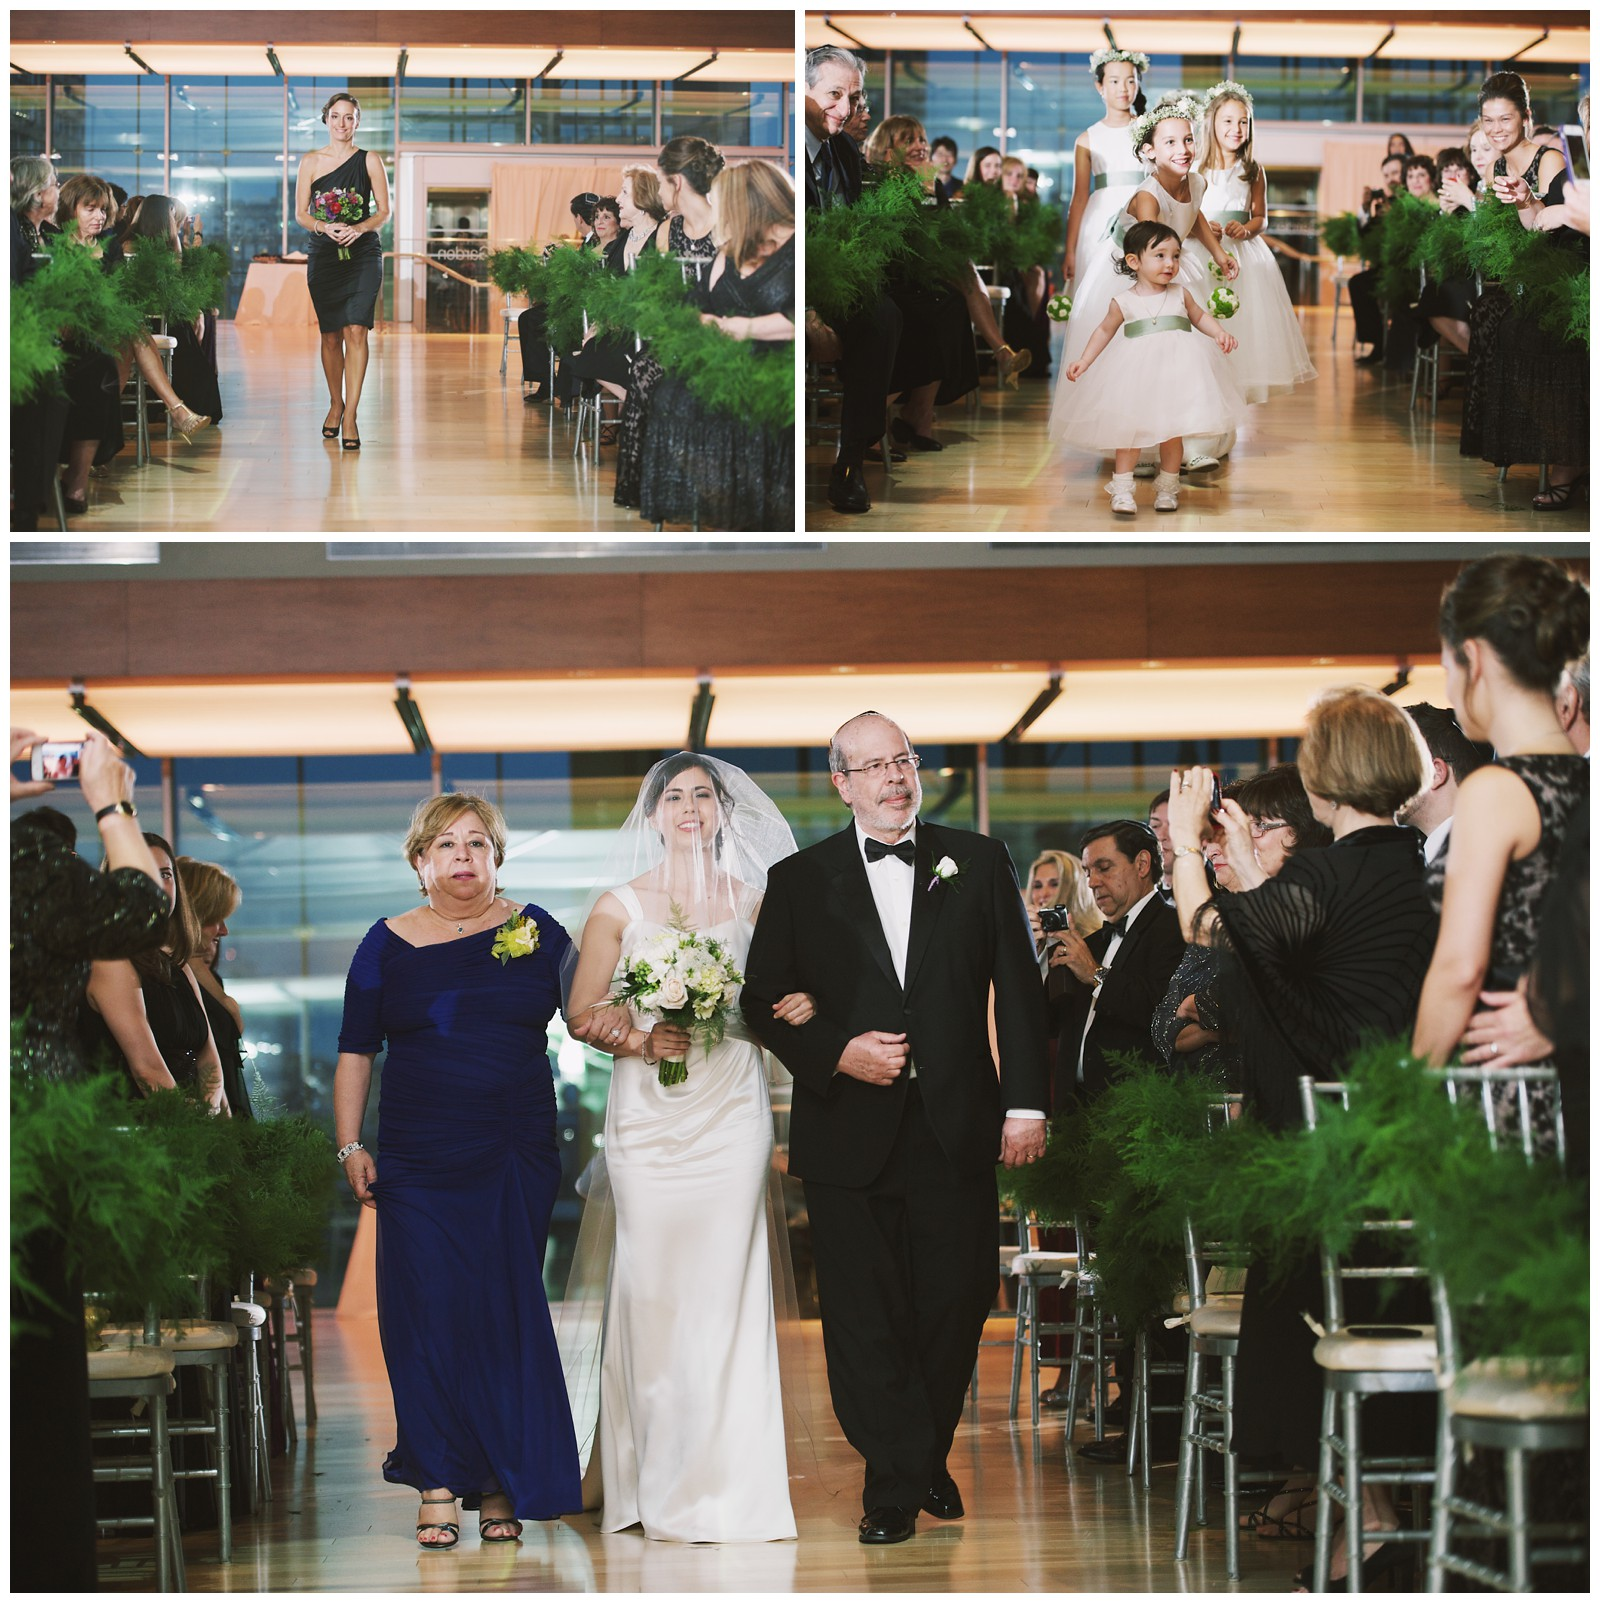 Vanessa and Adam's Wedding at Kimmel Center Philadelphia_0048